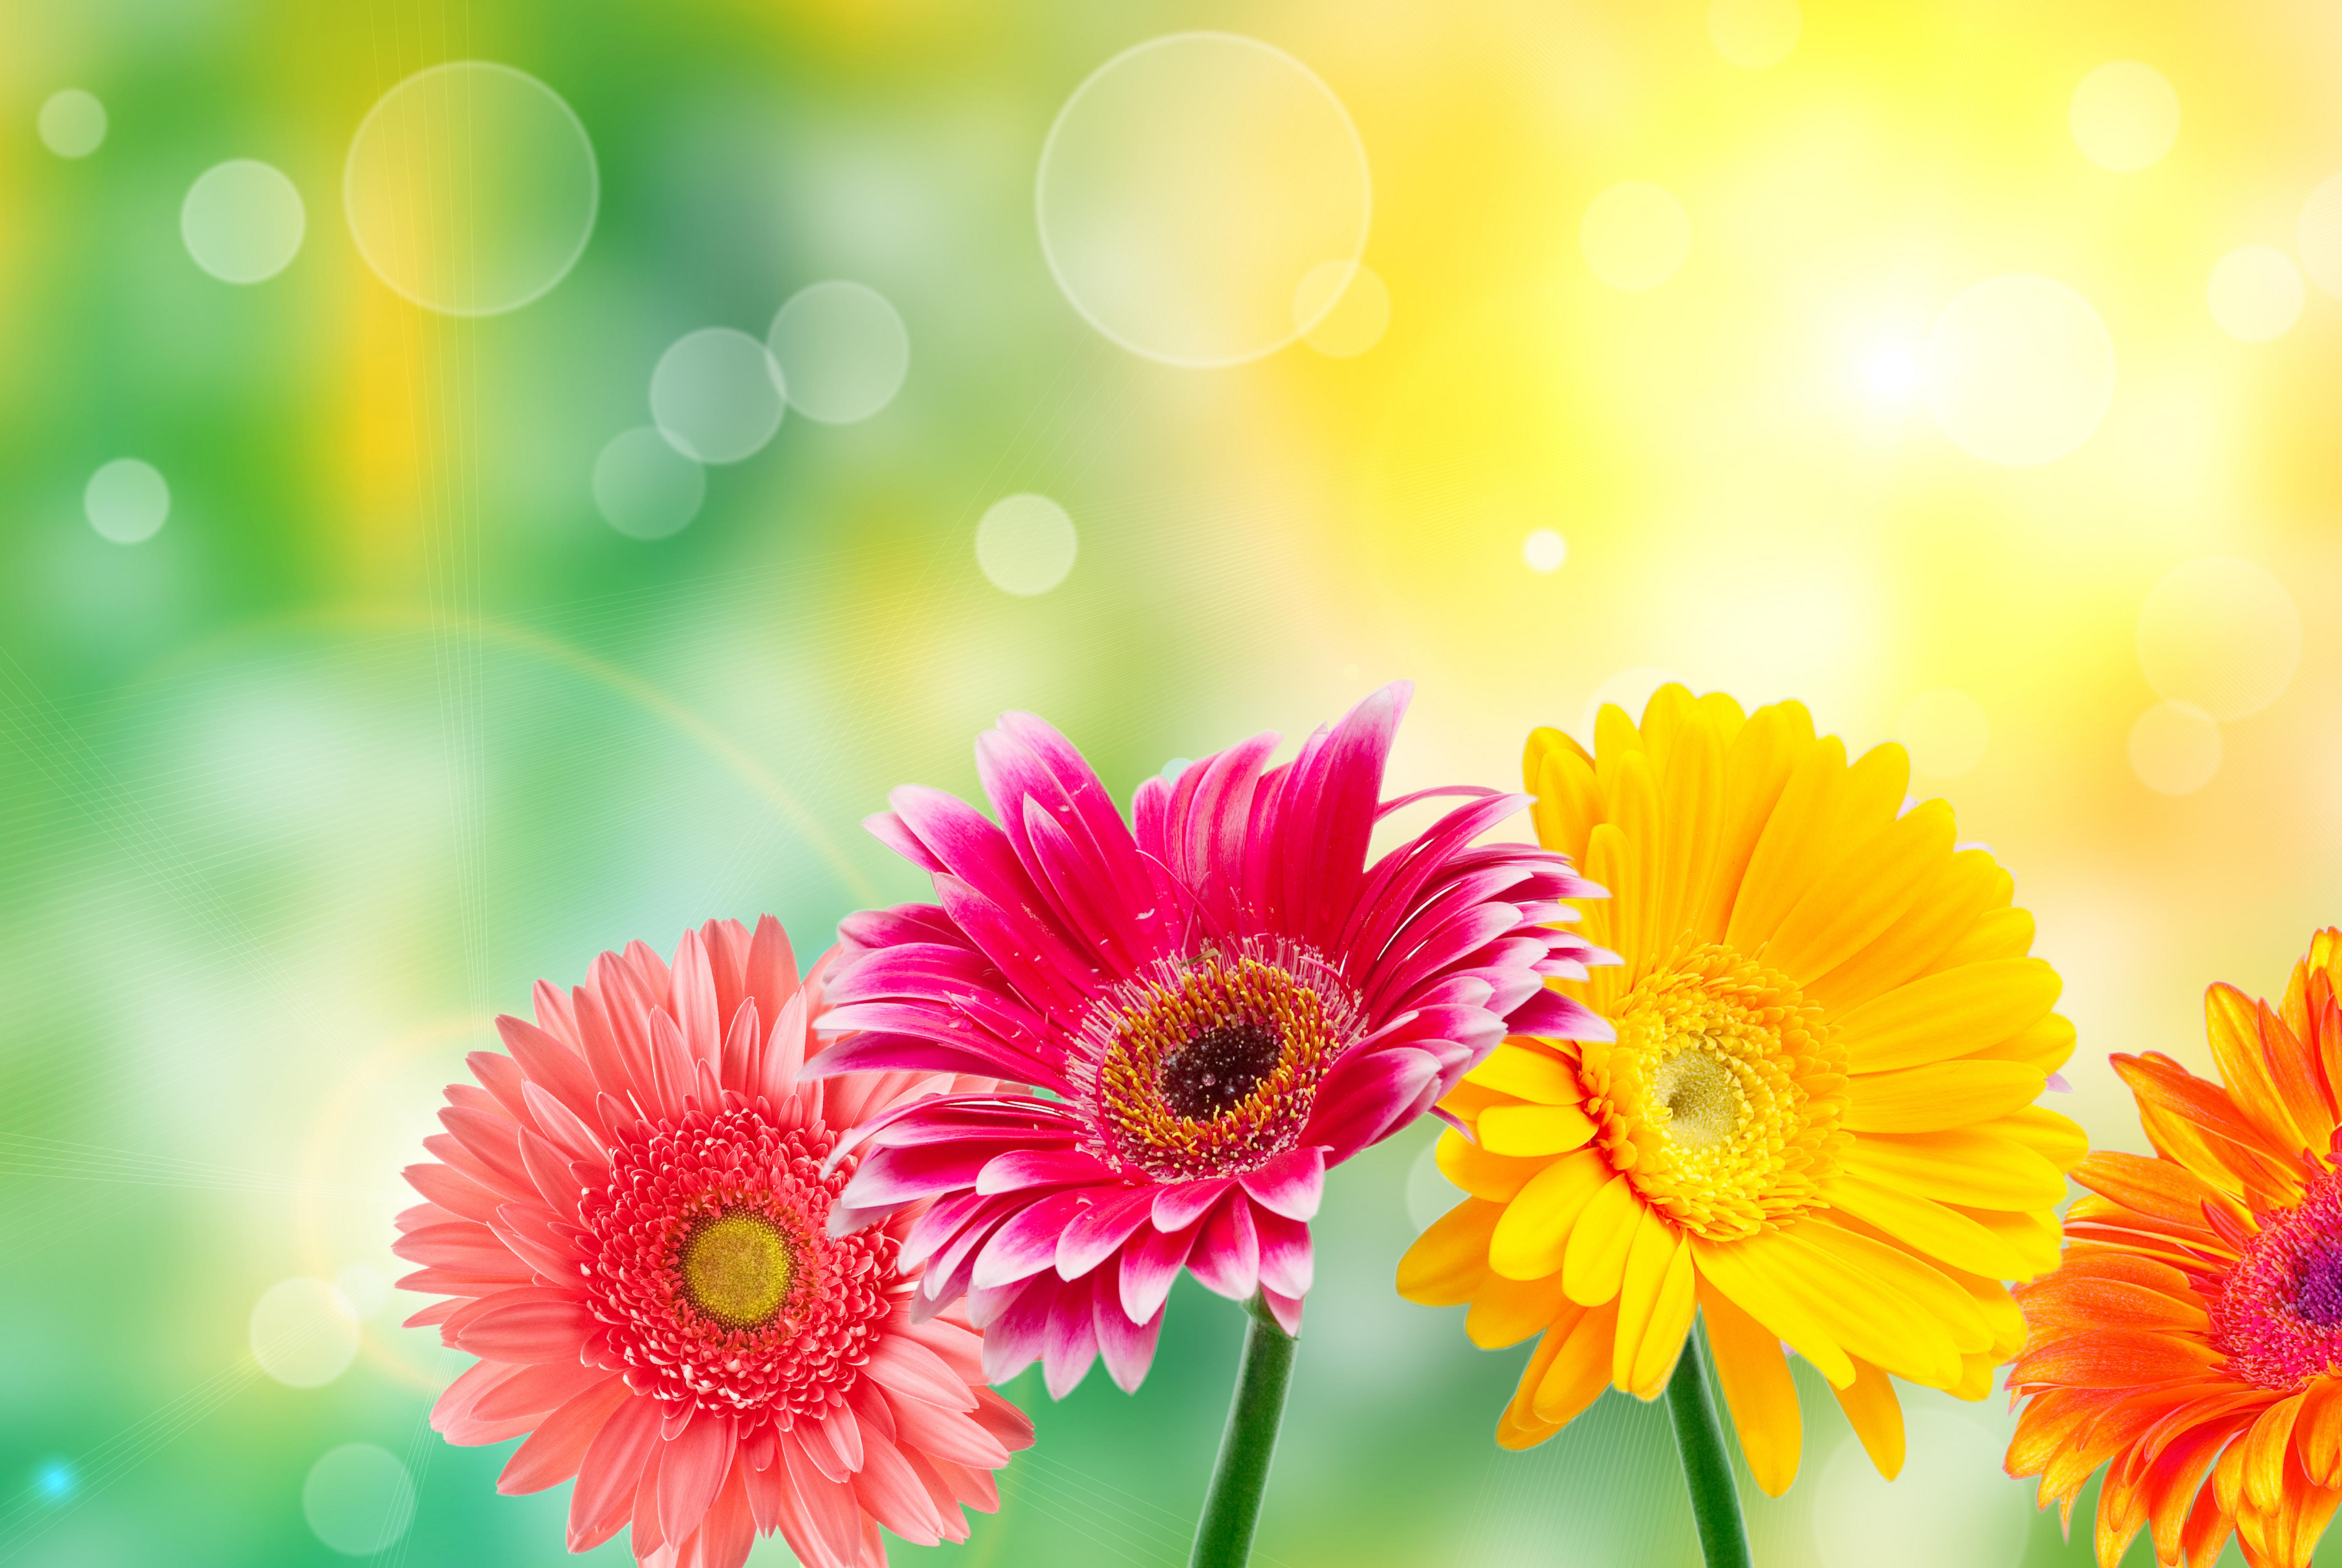 Gerbera Flowers on Blur Background  125.04 Kb